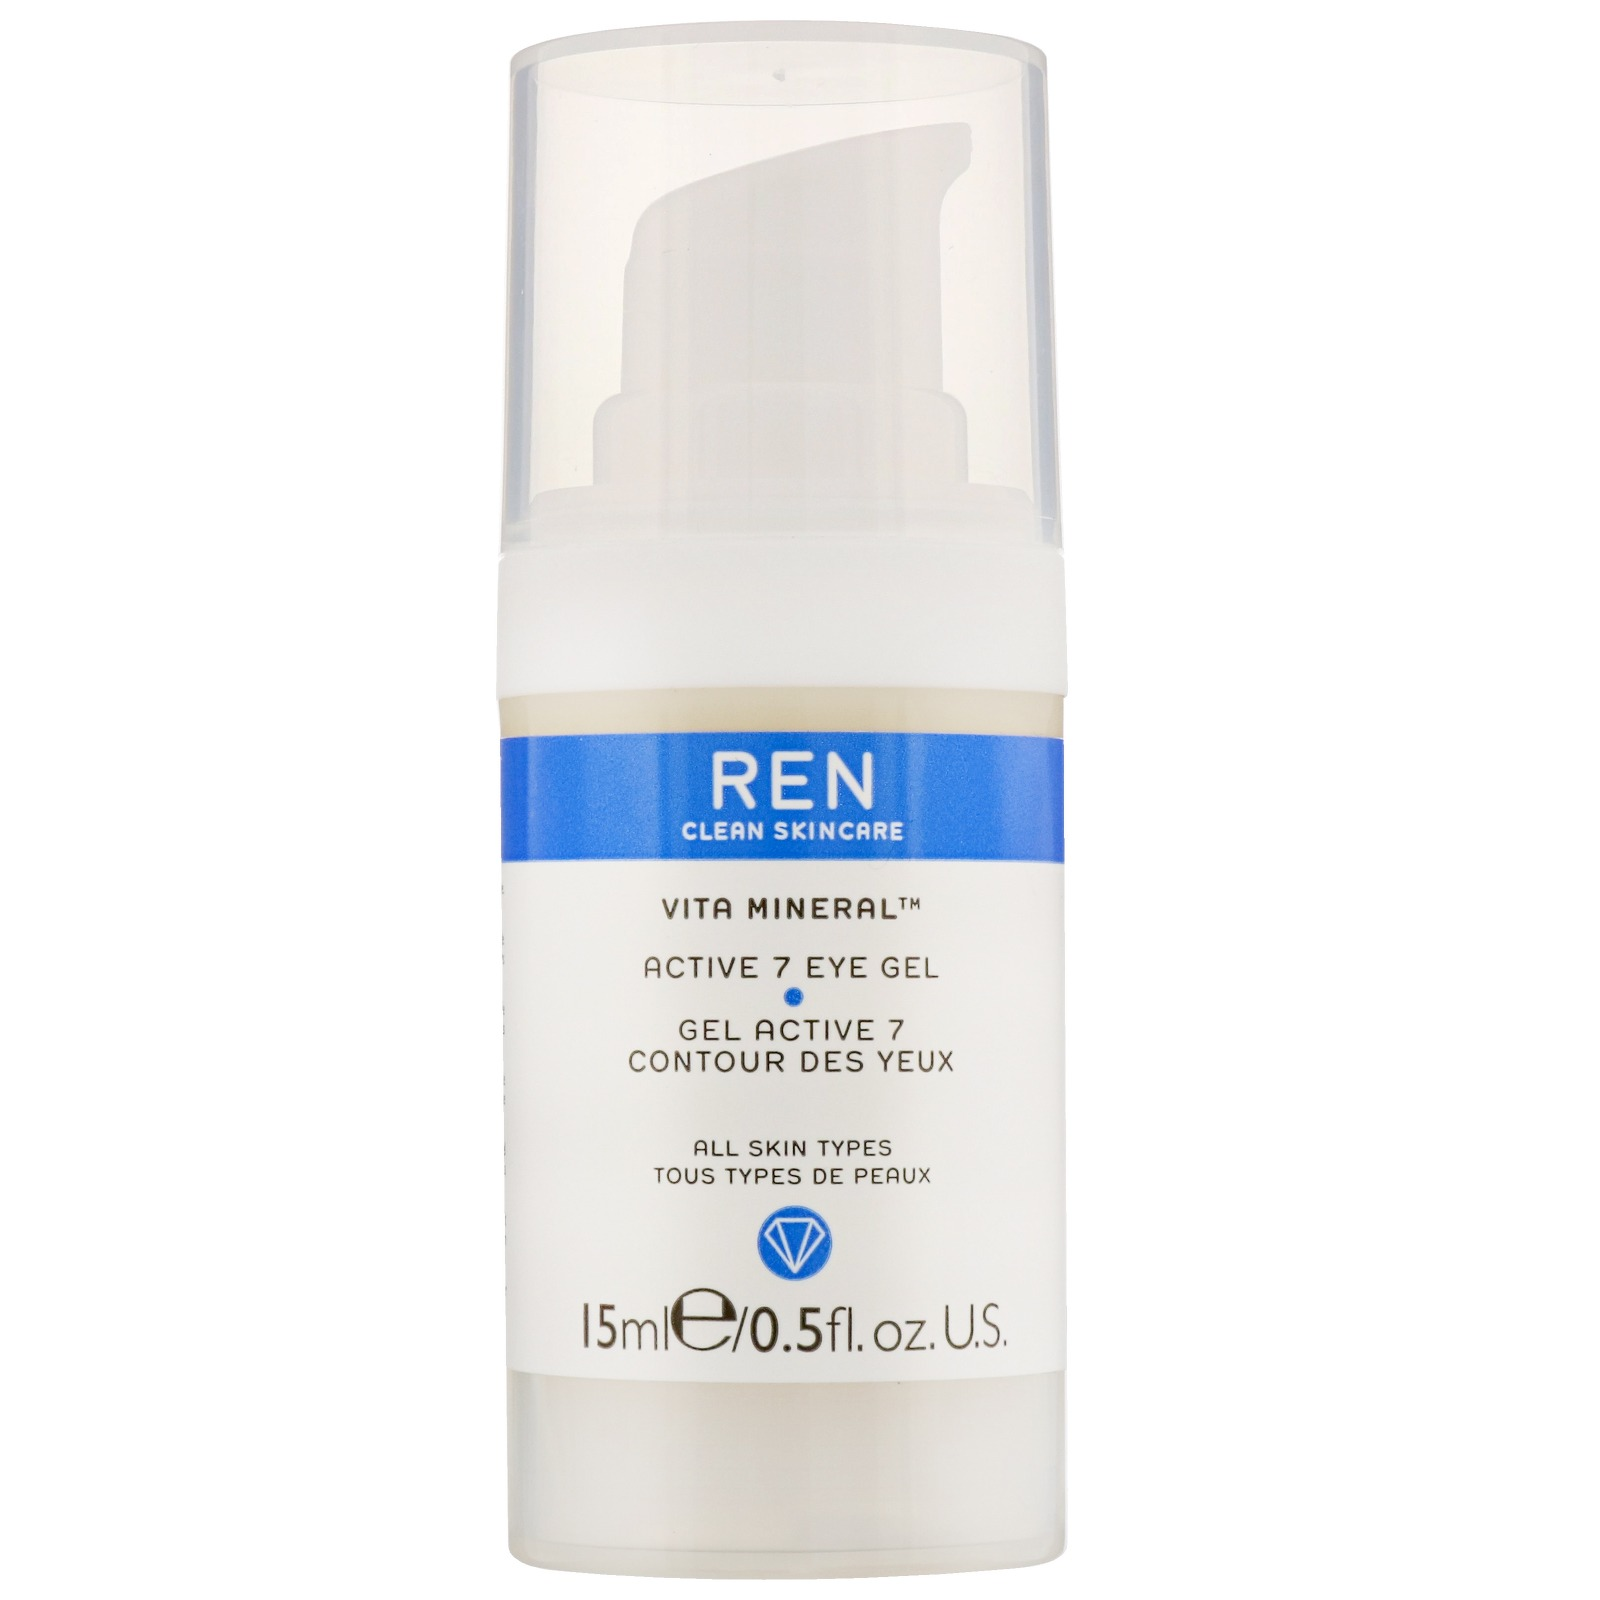 REN Clean Skincare Face Vita Mineral Active 7 Eye Gel 15ml / 0.5 fl.oz.